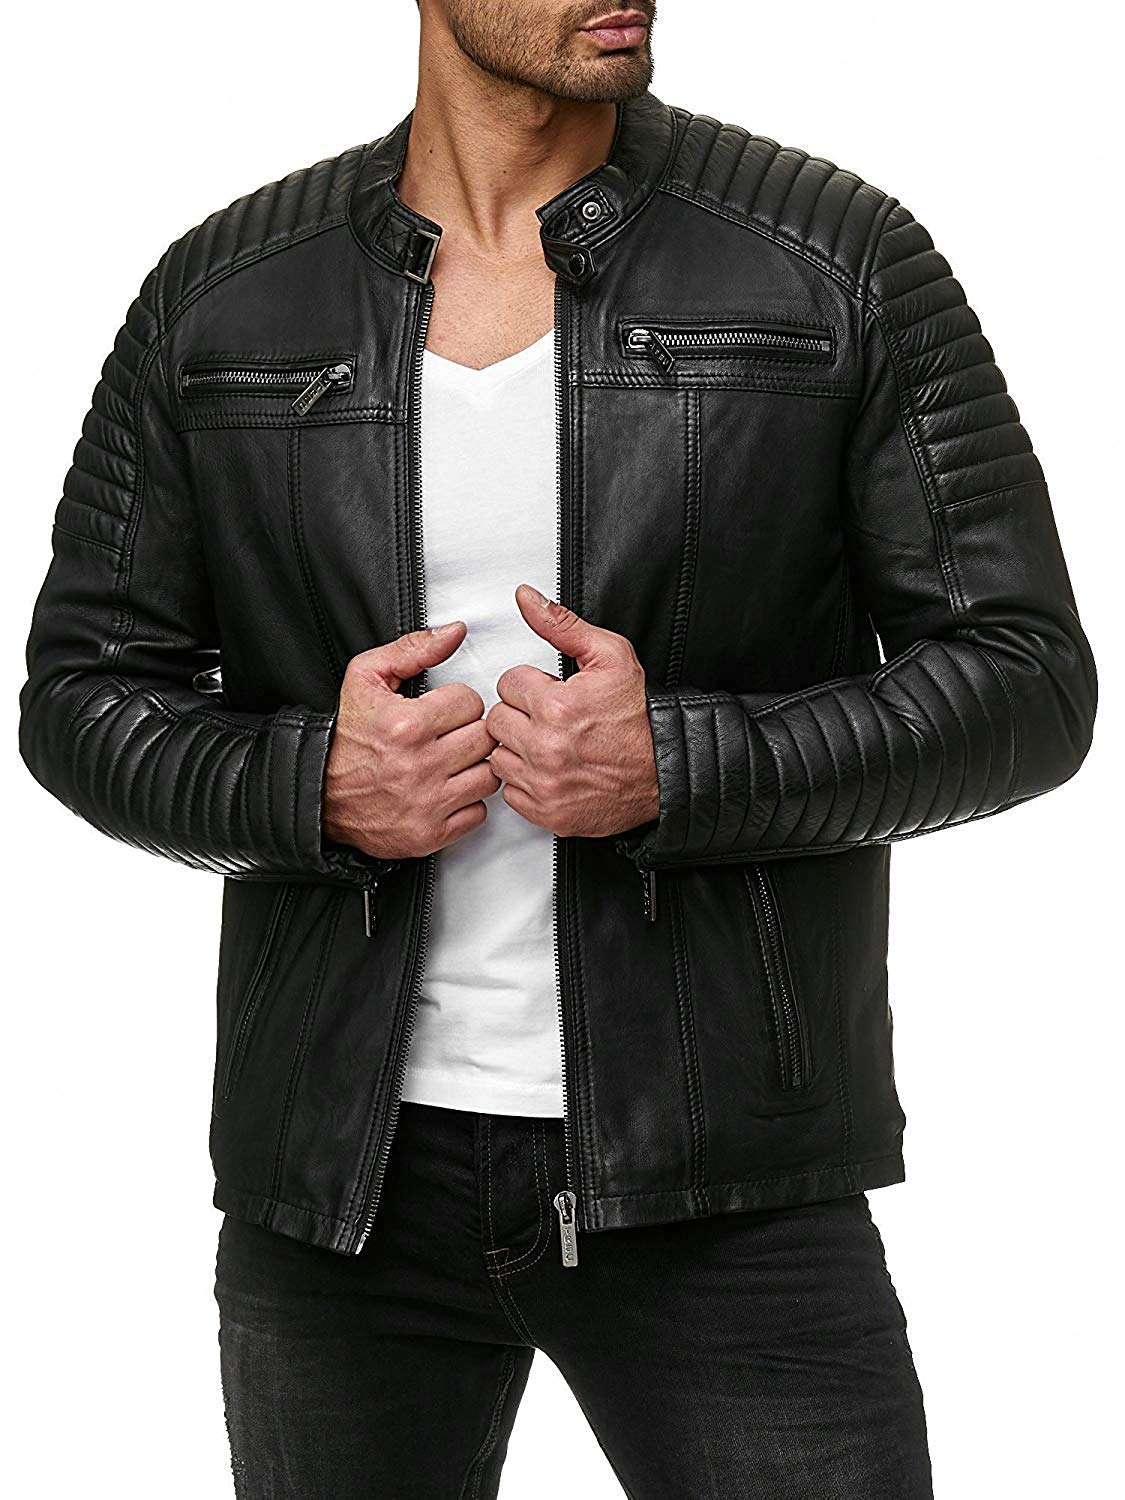 COOFANDY Men's Classic Pu Leather Motorcycle Jacket Biker Jacket Zipper Coat